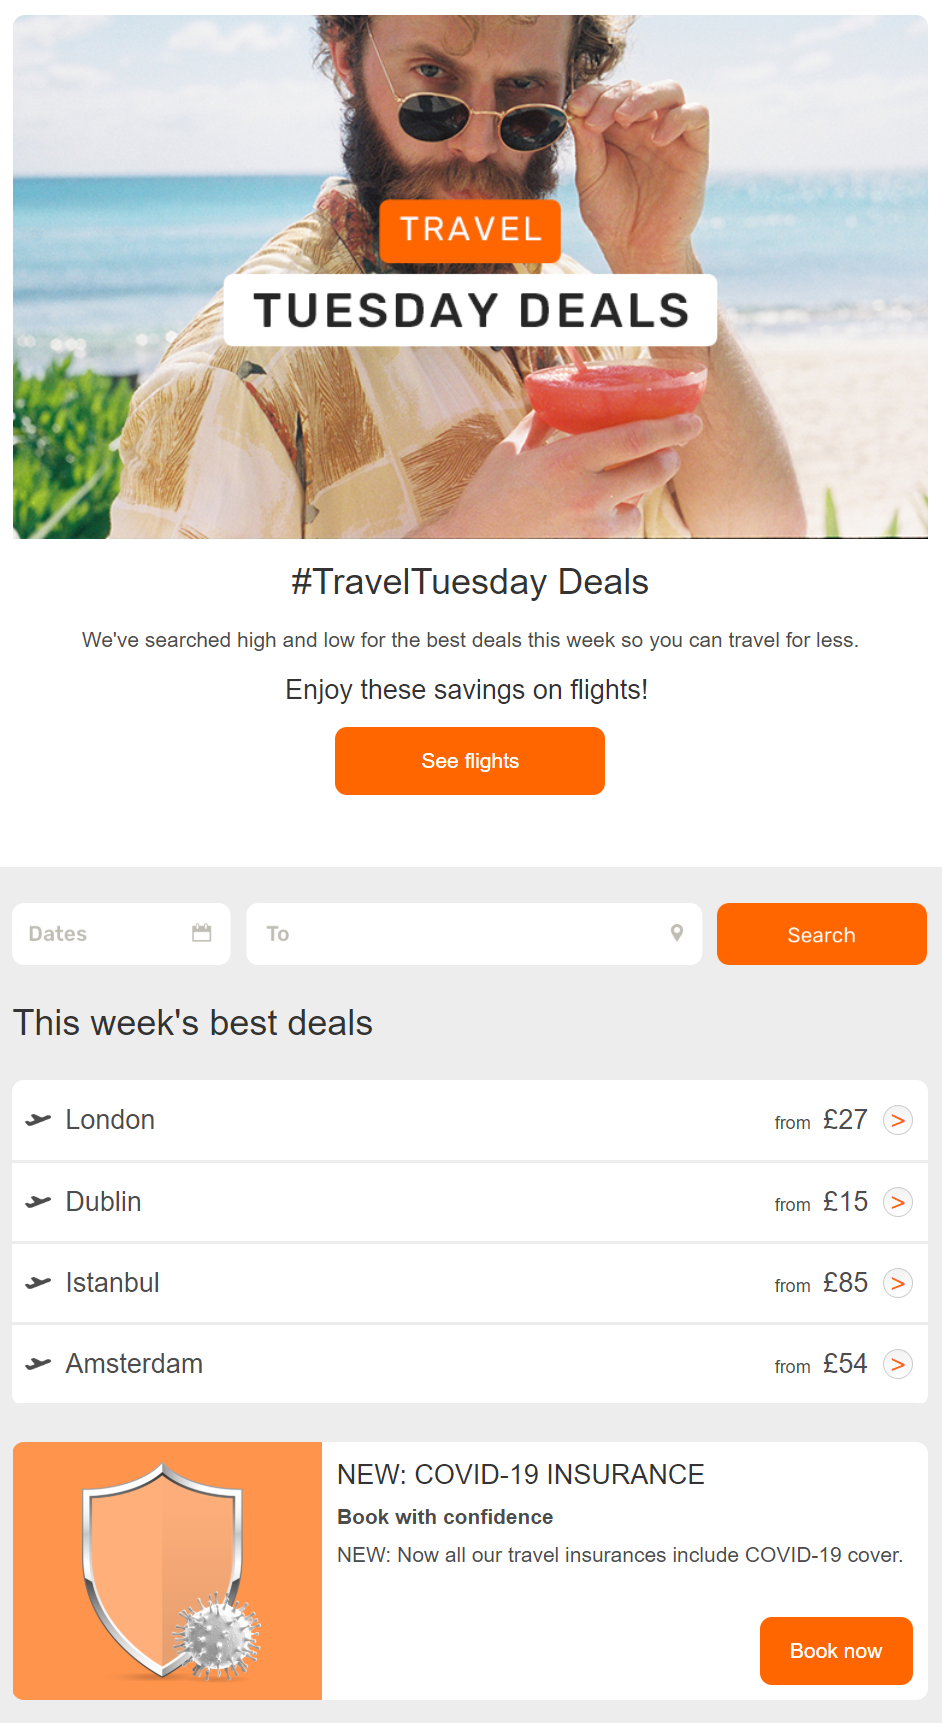 Traveltuesday Deals Opodo S Travel Email Campaign In 2020 Travel Hospitality Industry Marketing